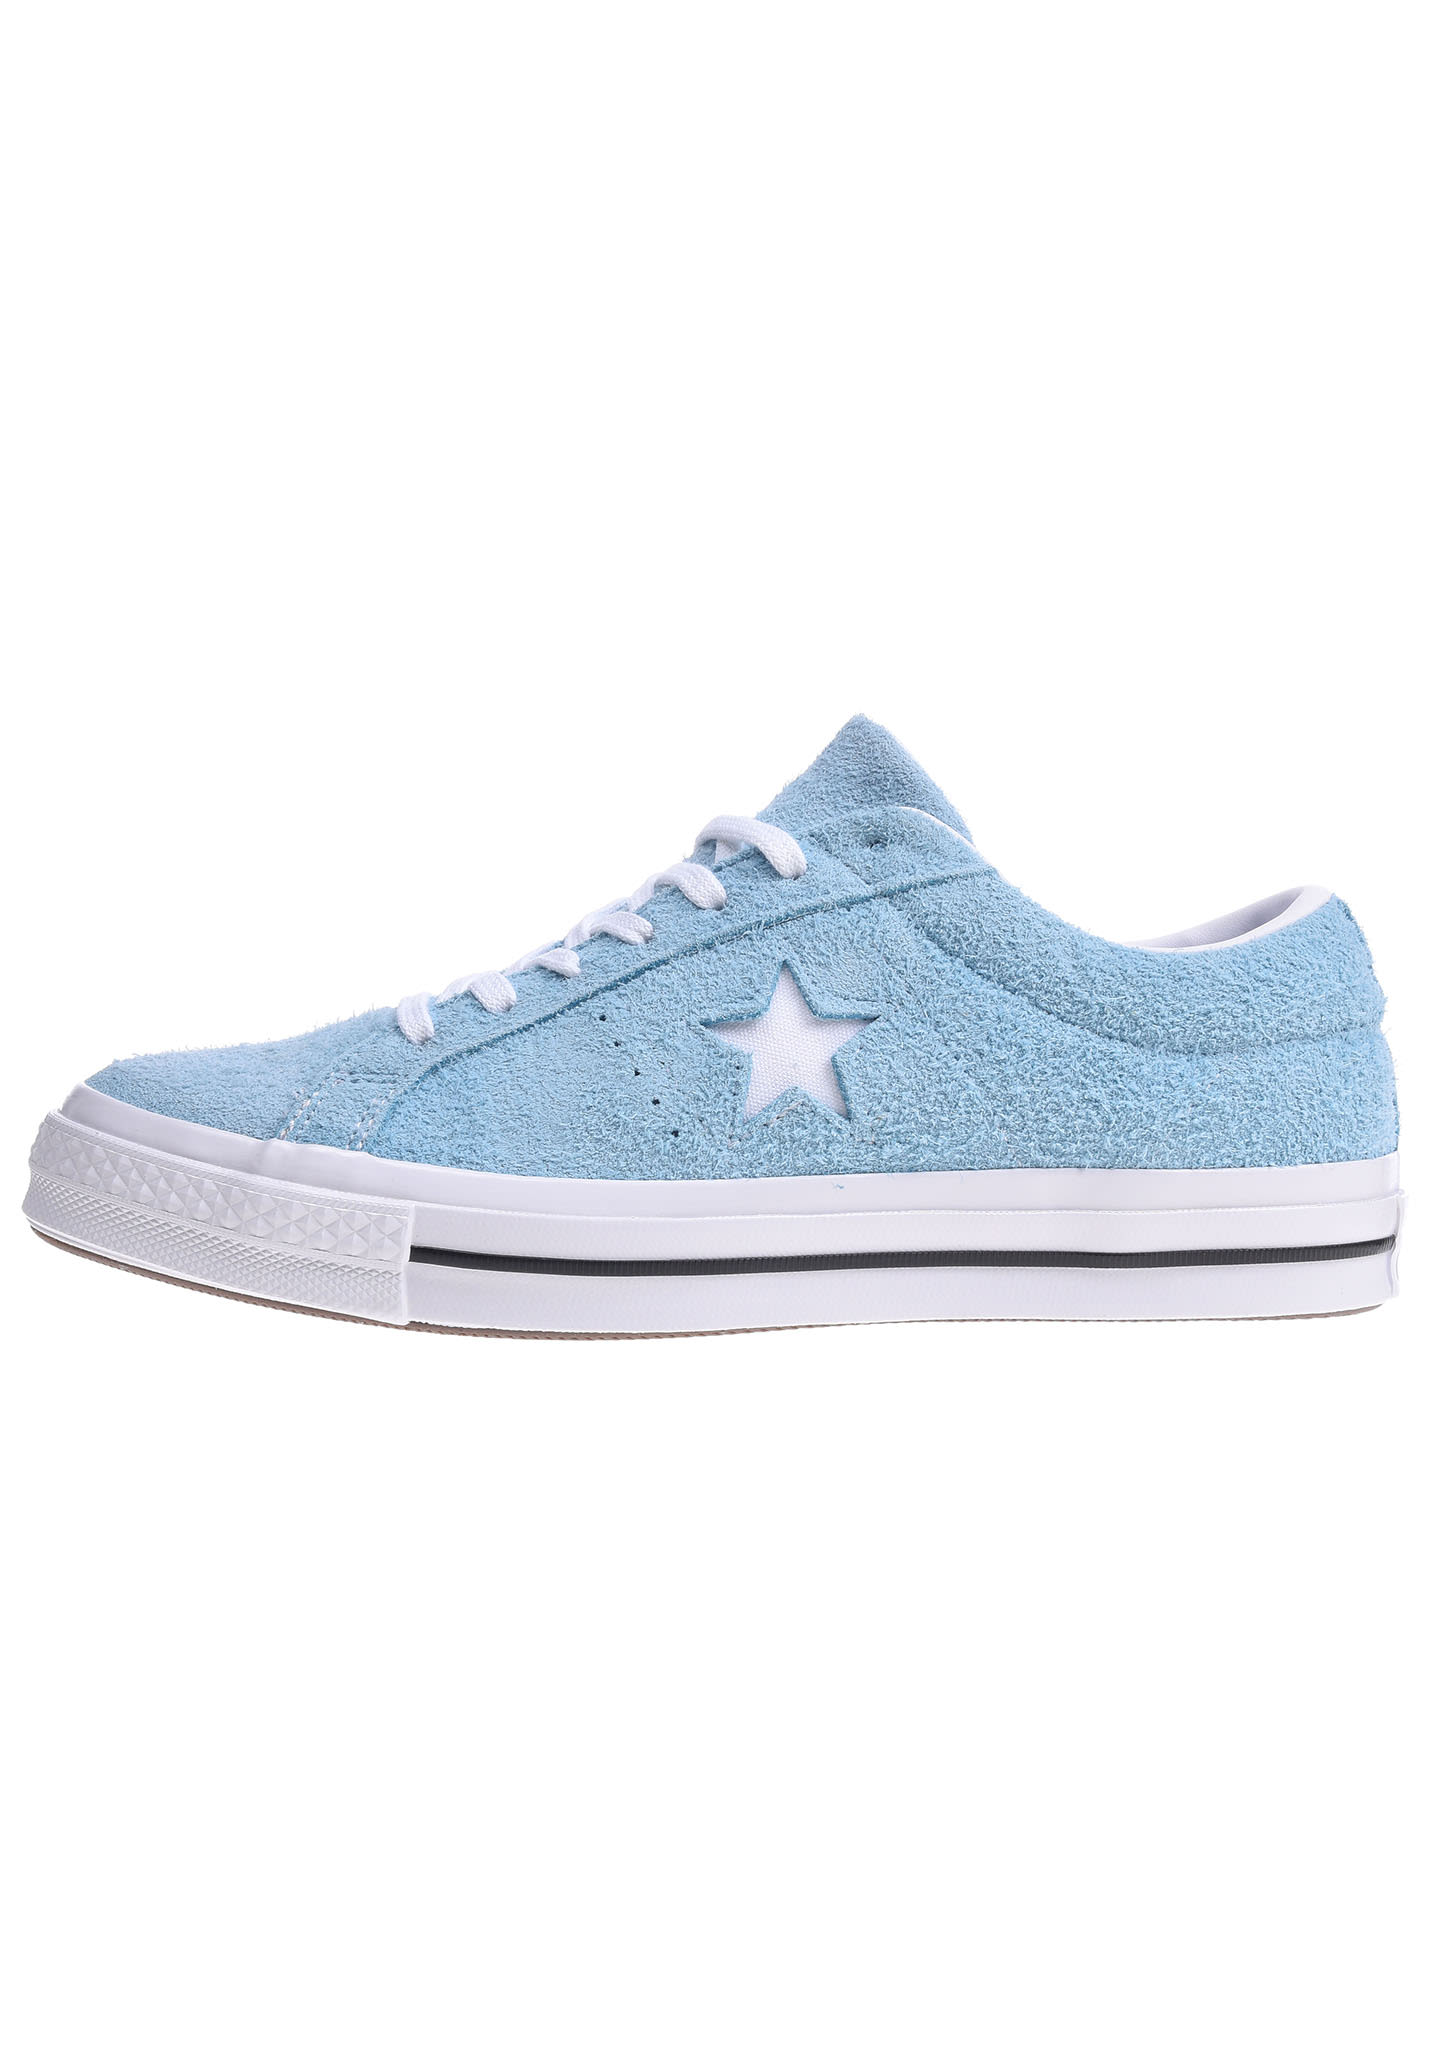 8251dfa470a4 Converse One Star Ox Shoreline - Sneakers for Men - Blue - Planet Sports